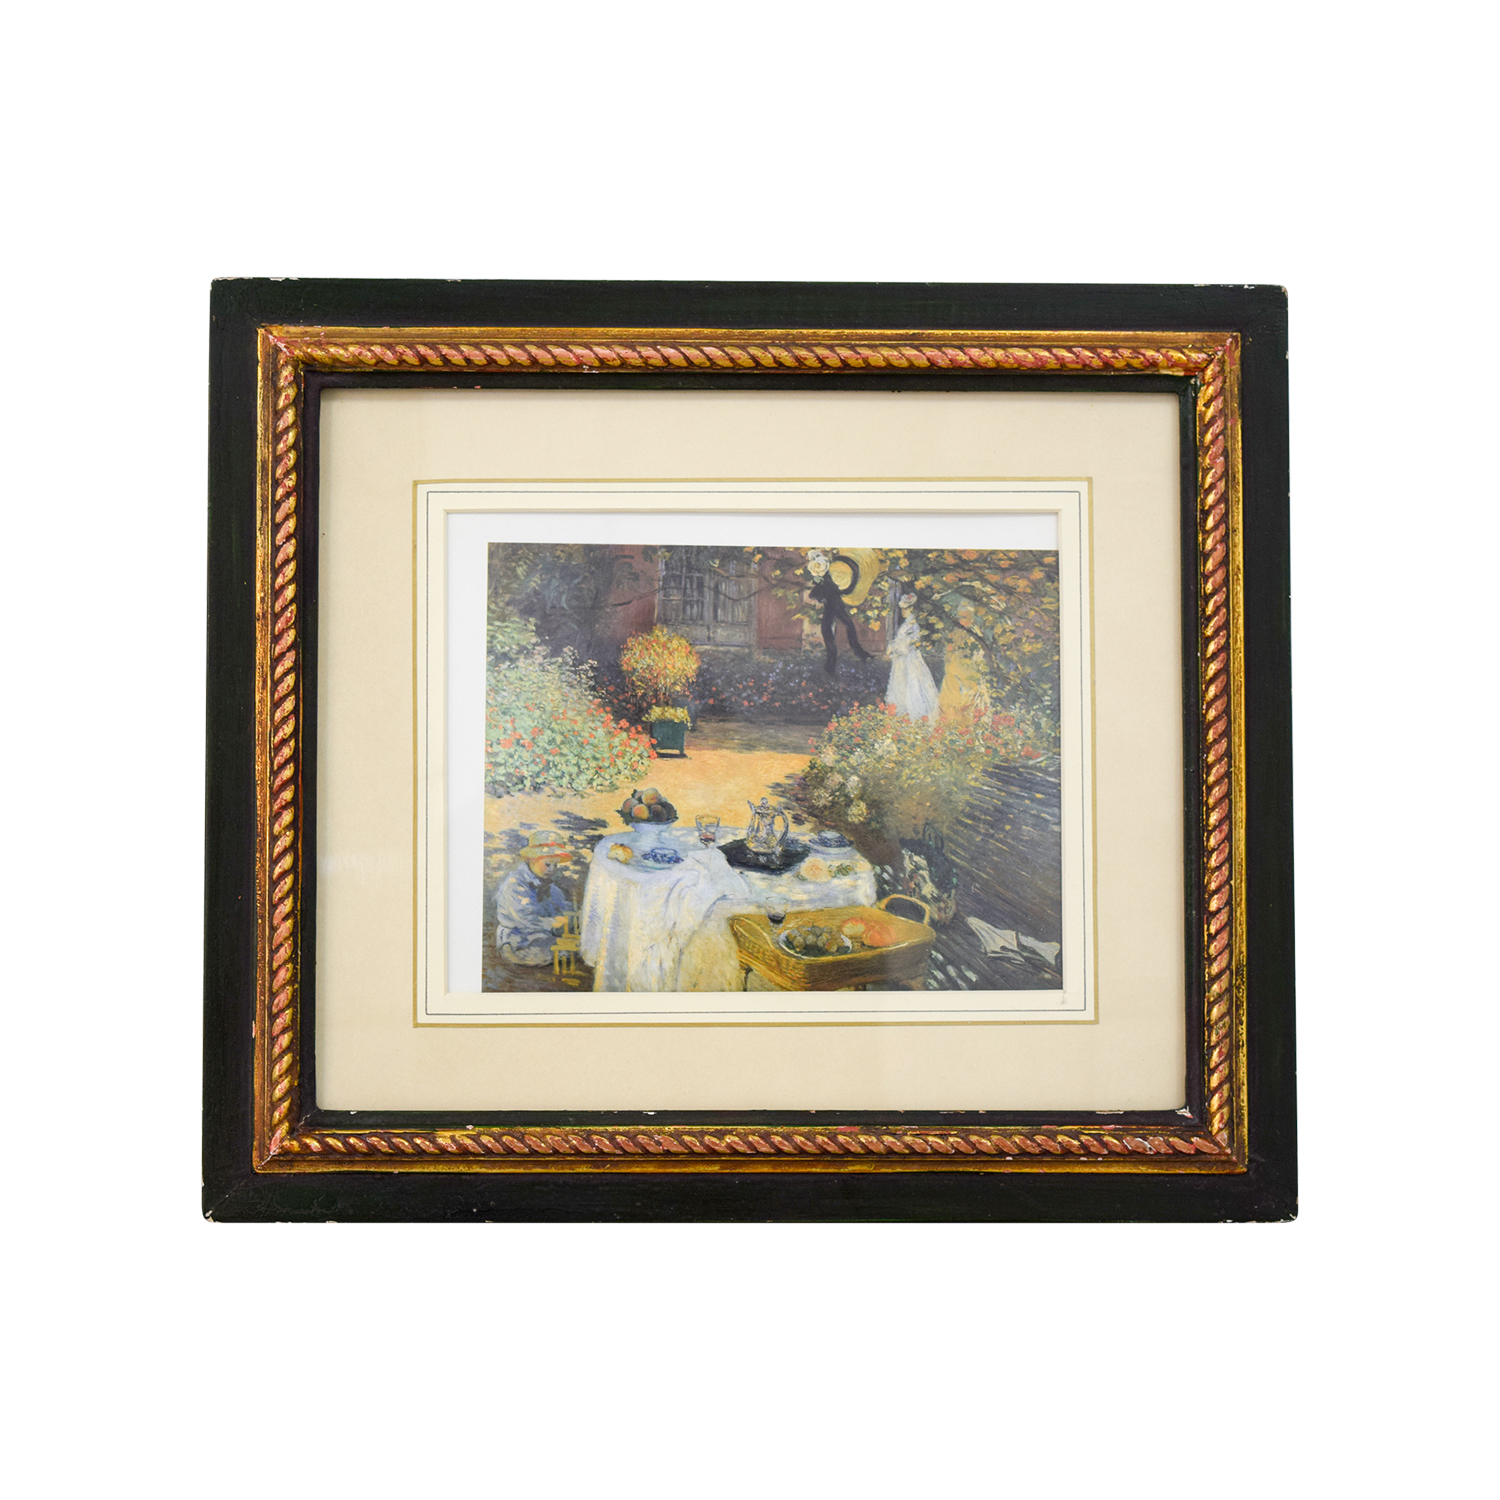 The Luncheon, Monets Garden at Argenteuil Framed Print on sale